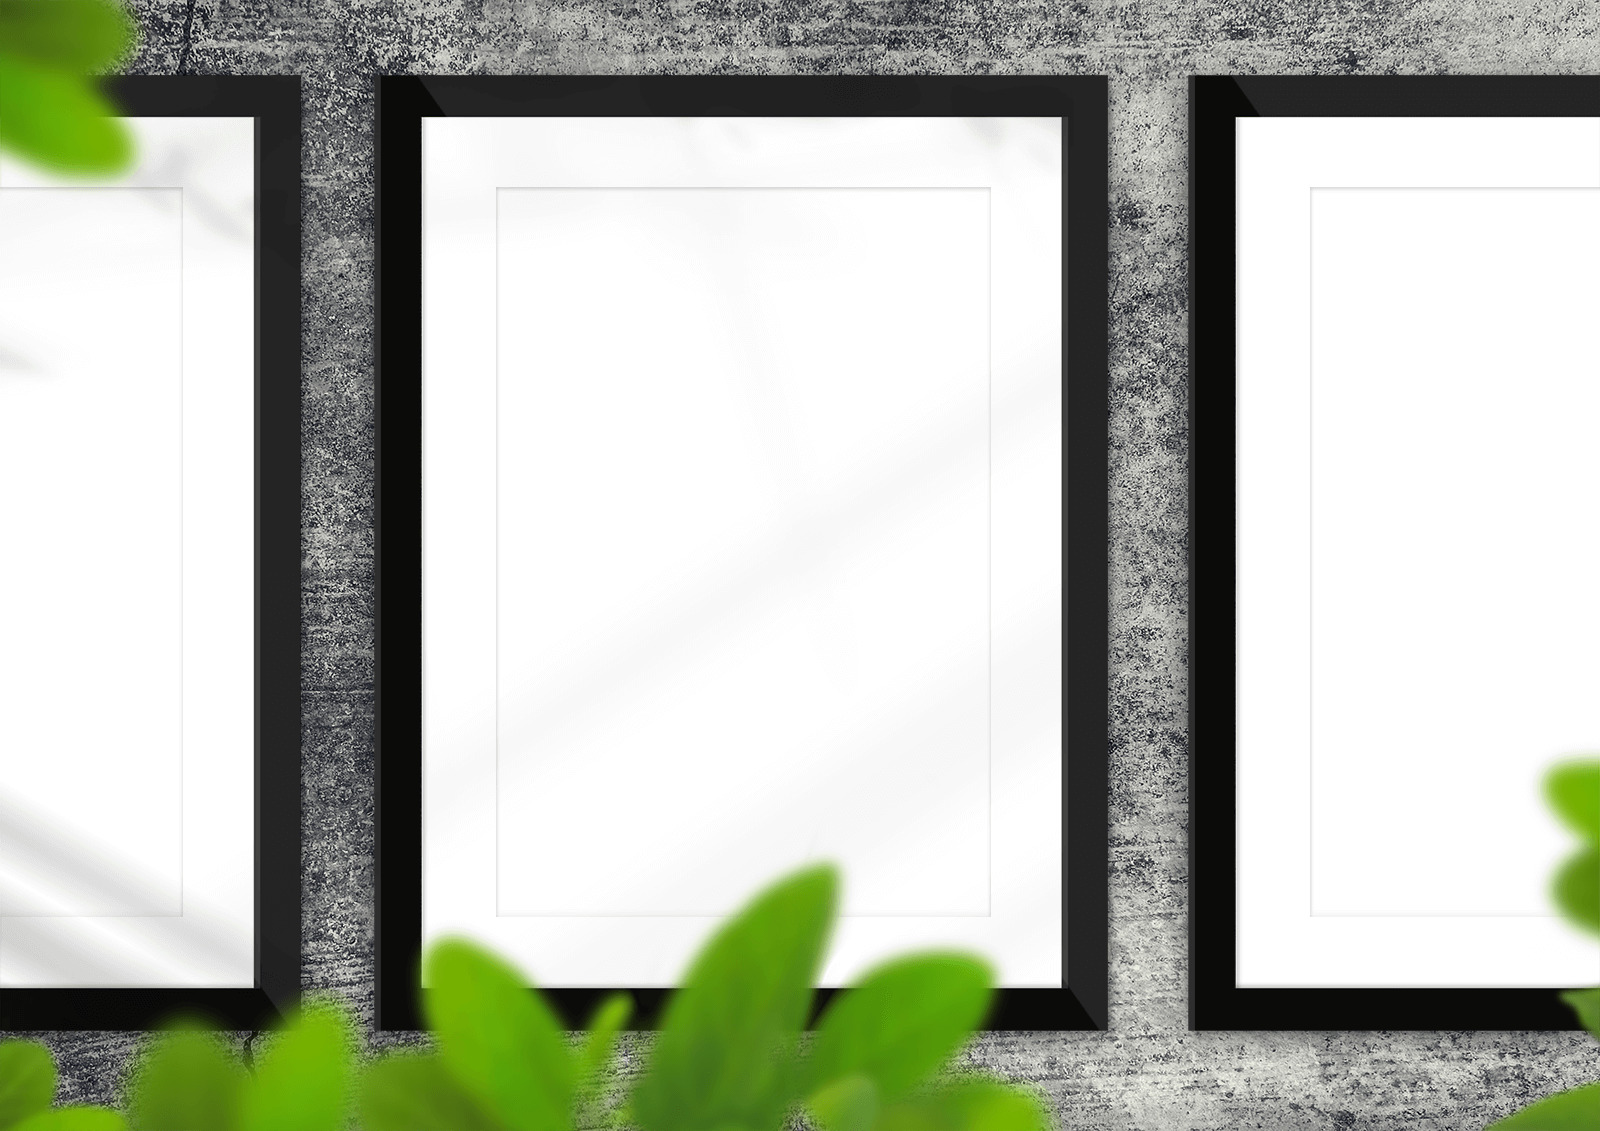 Free Picture Frames on Concrete Wall Mockup